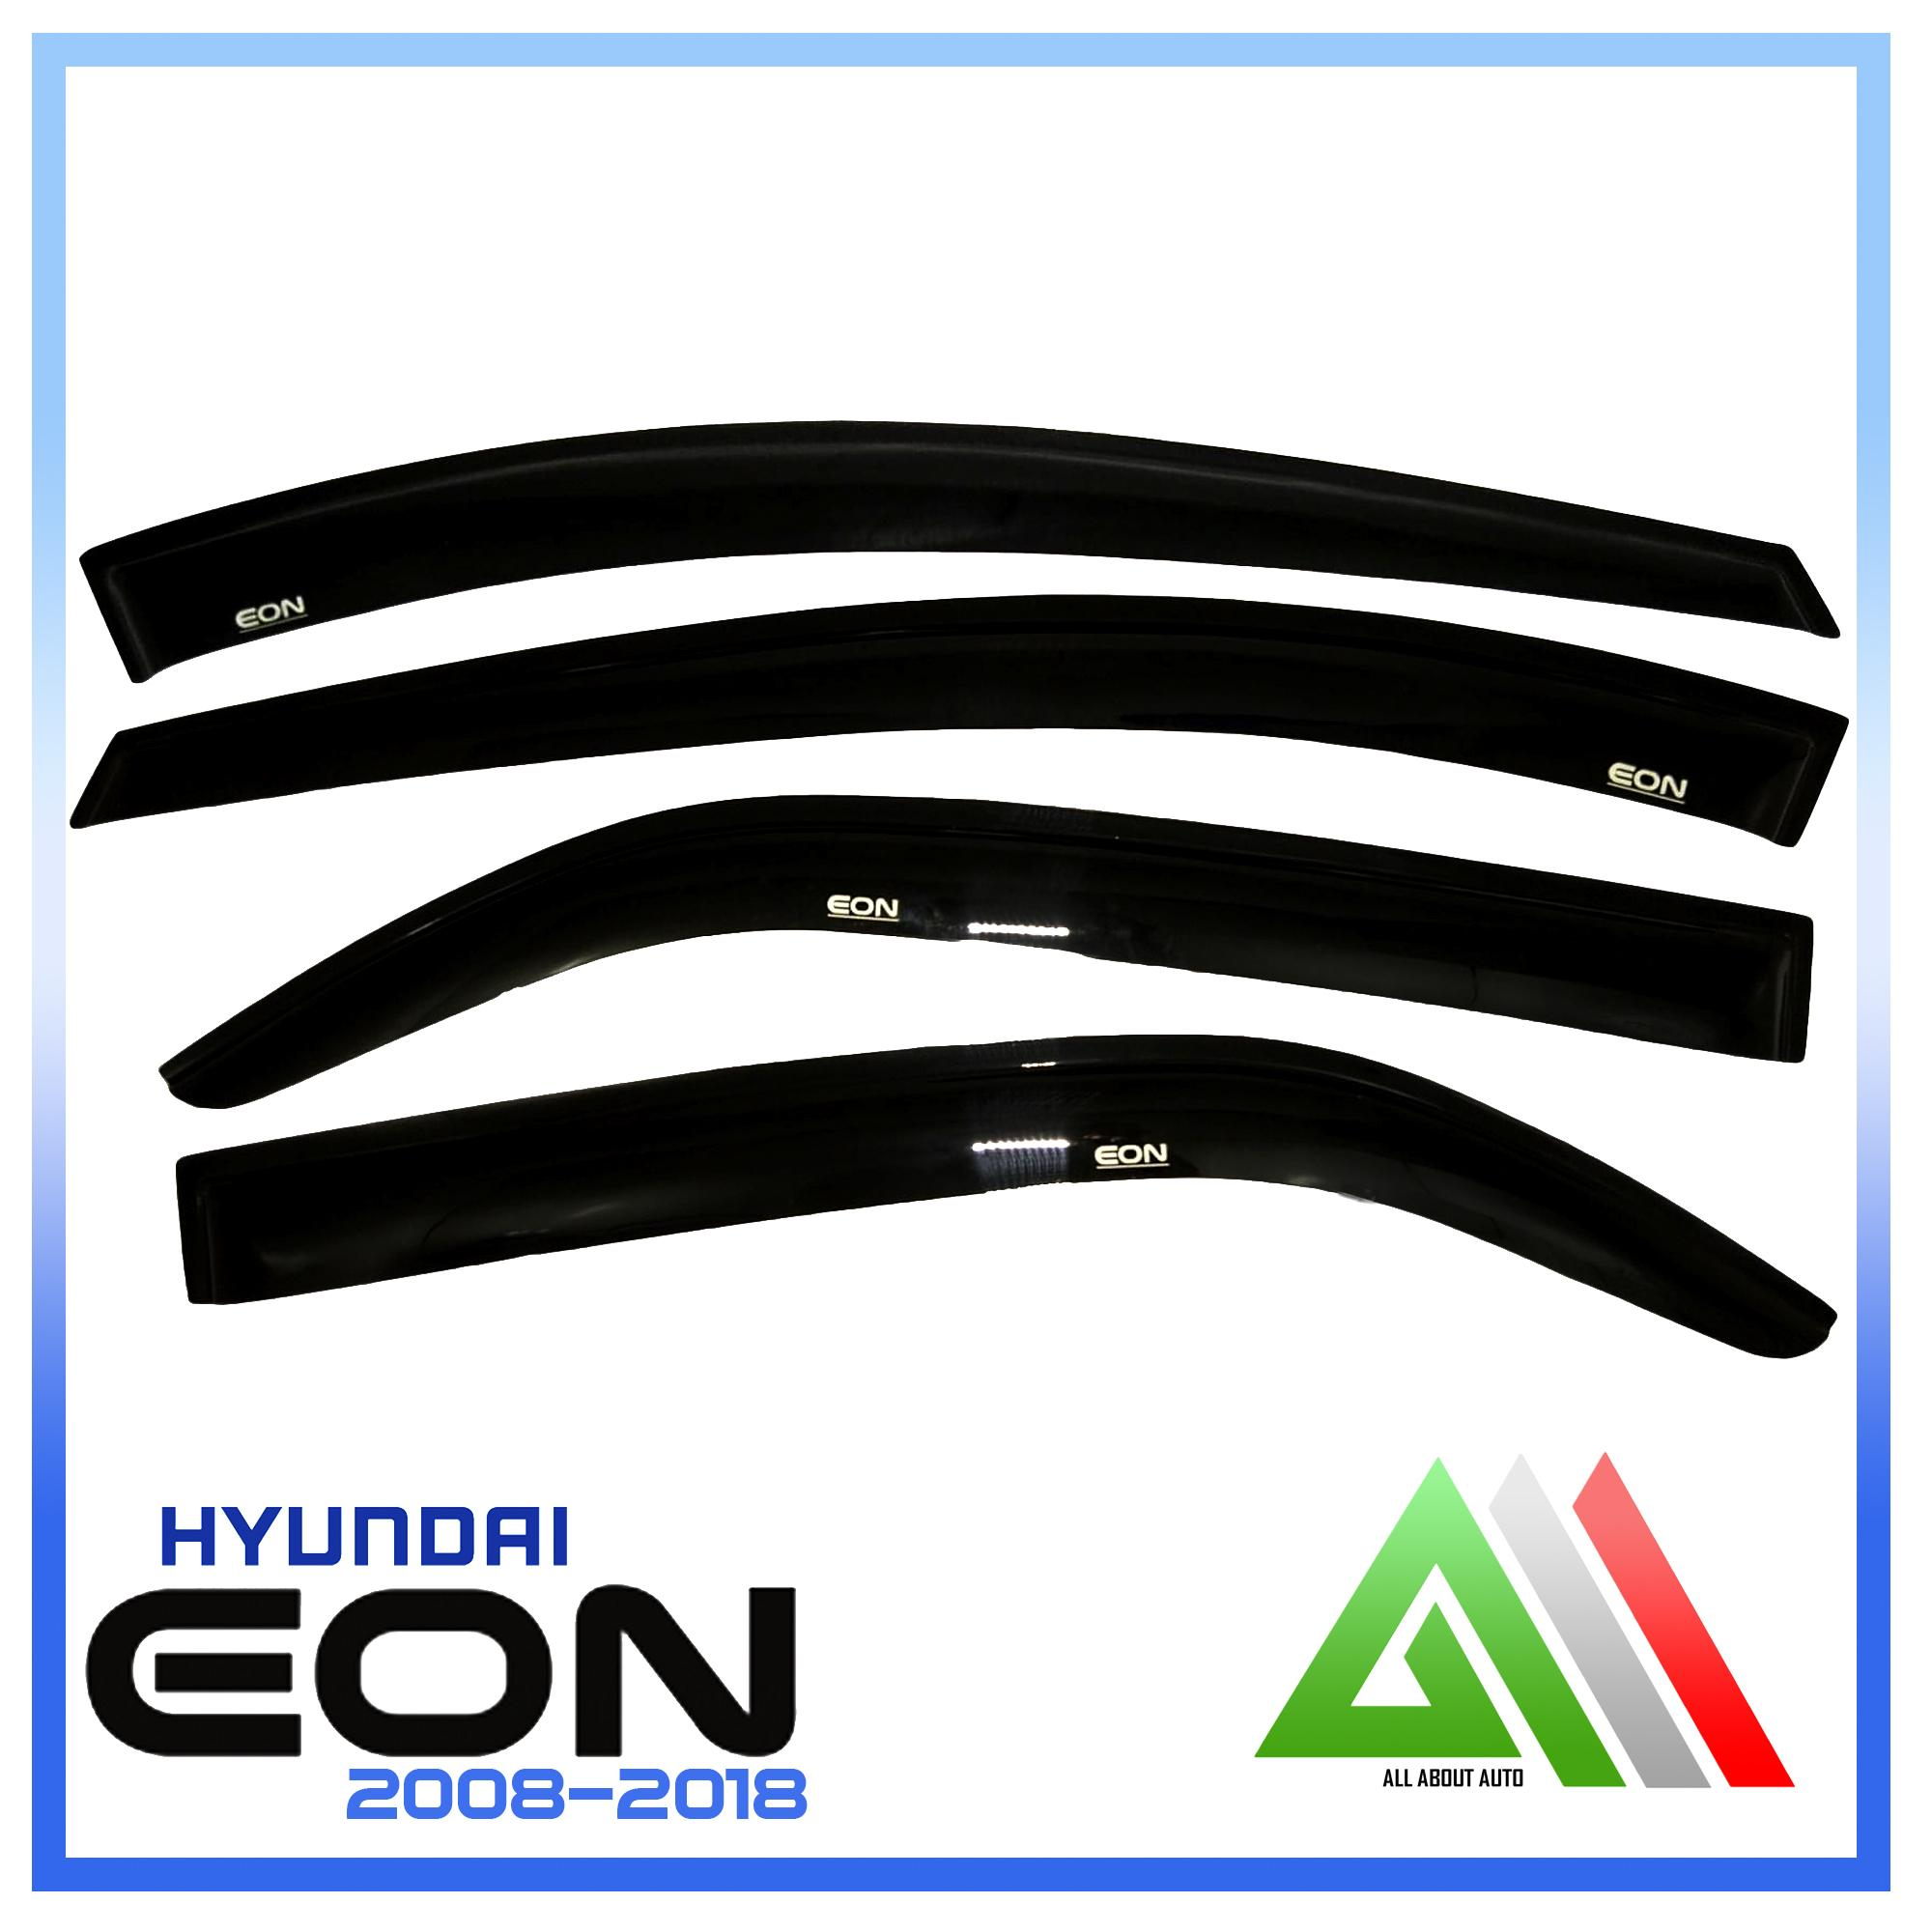 Hyundai Philippines - Hyundai Exterior Accessories for sale - prices